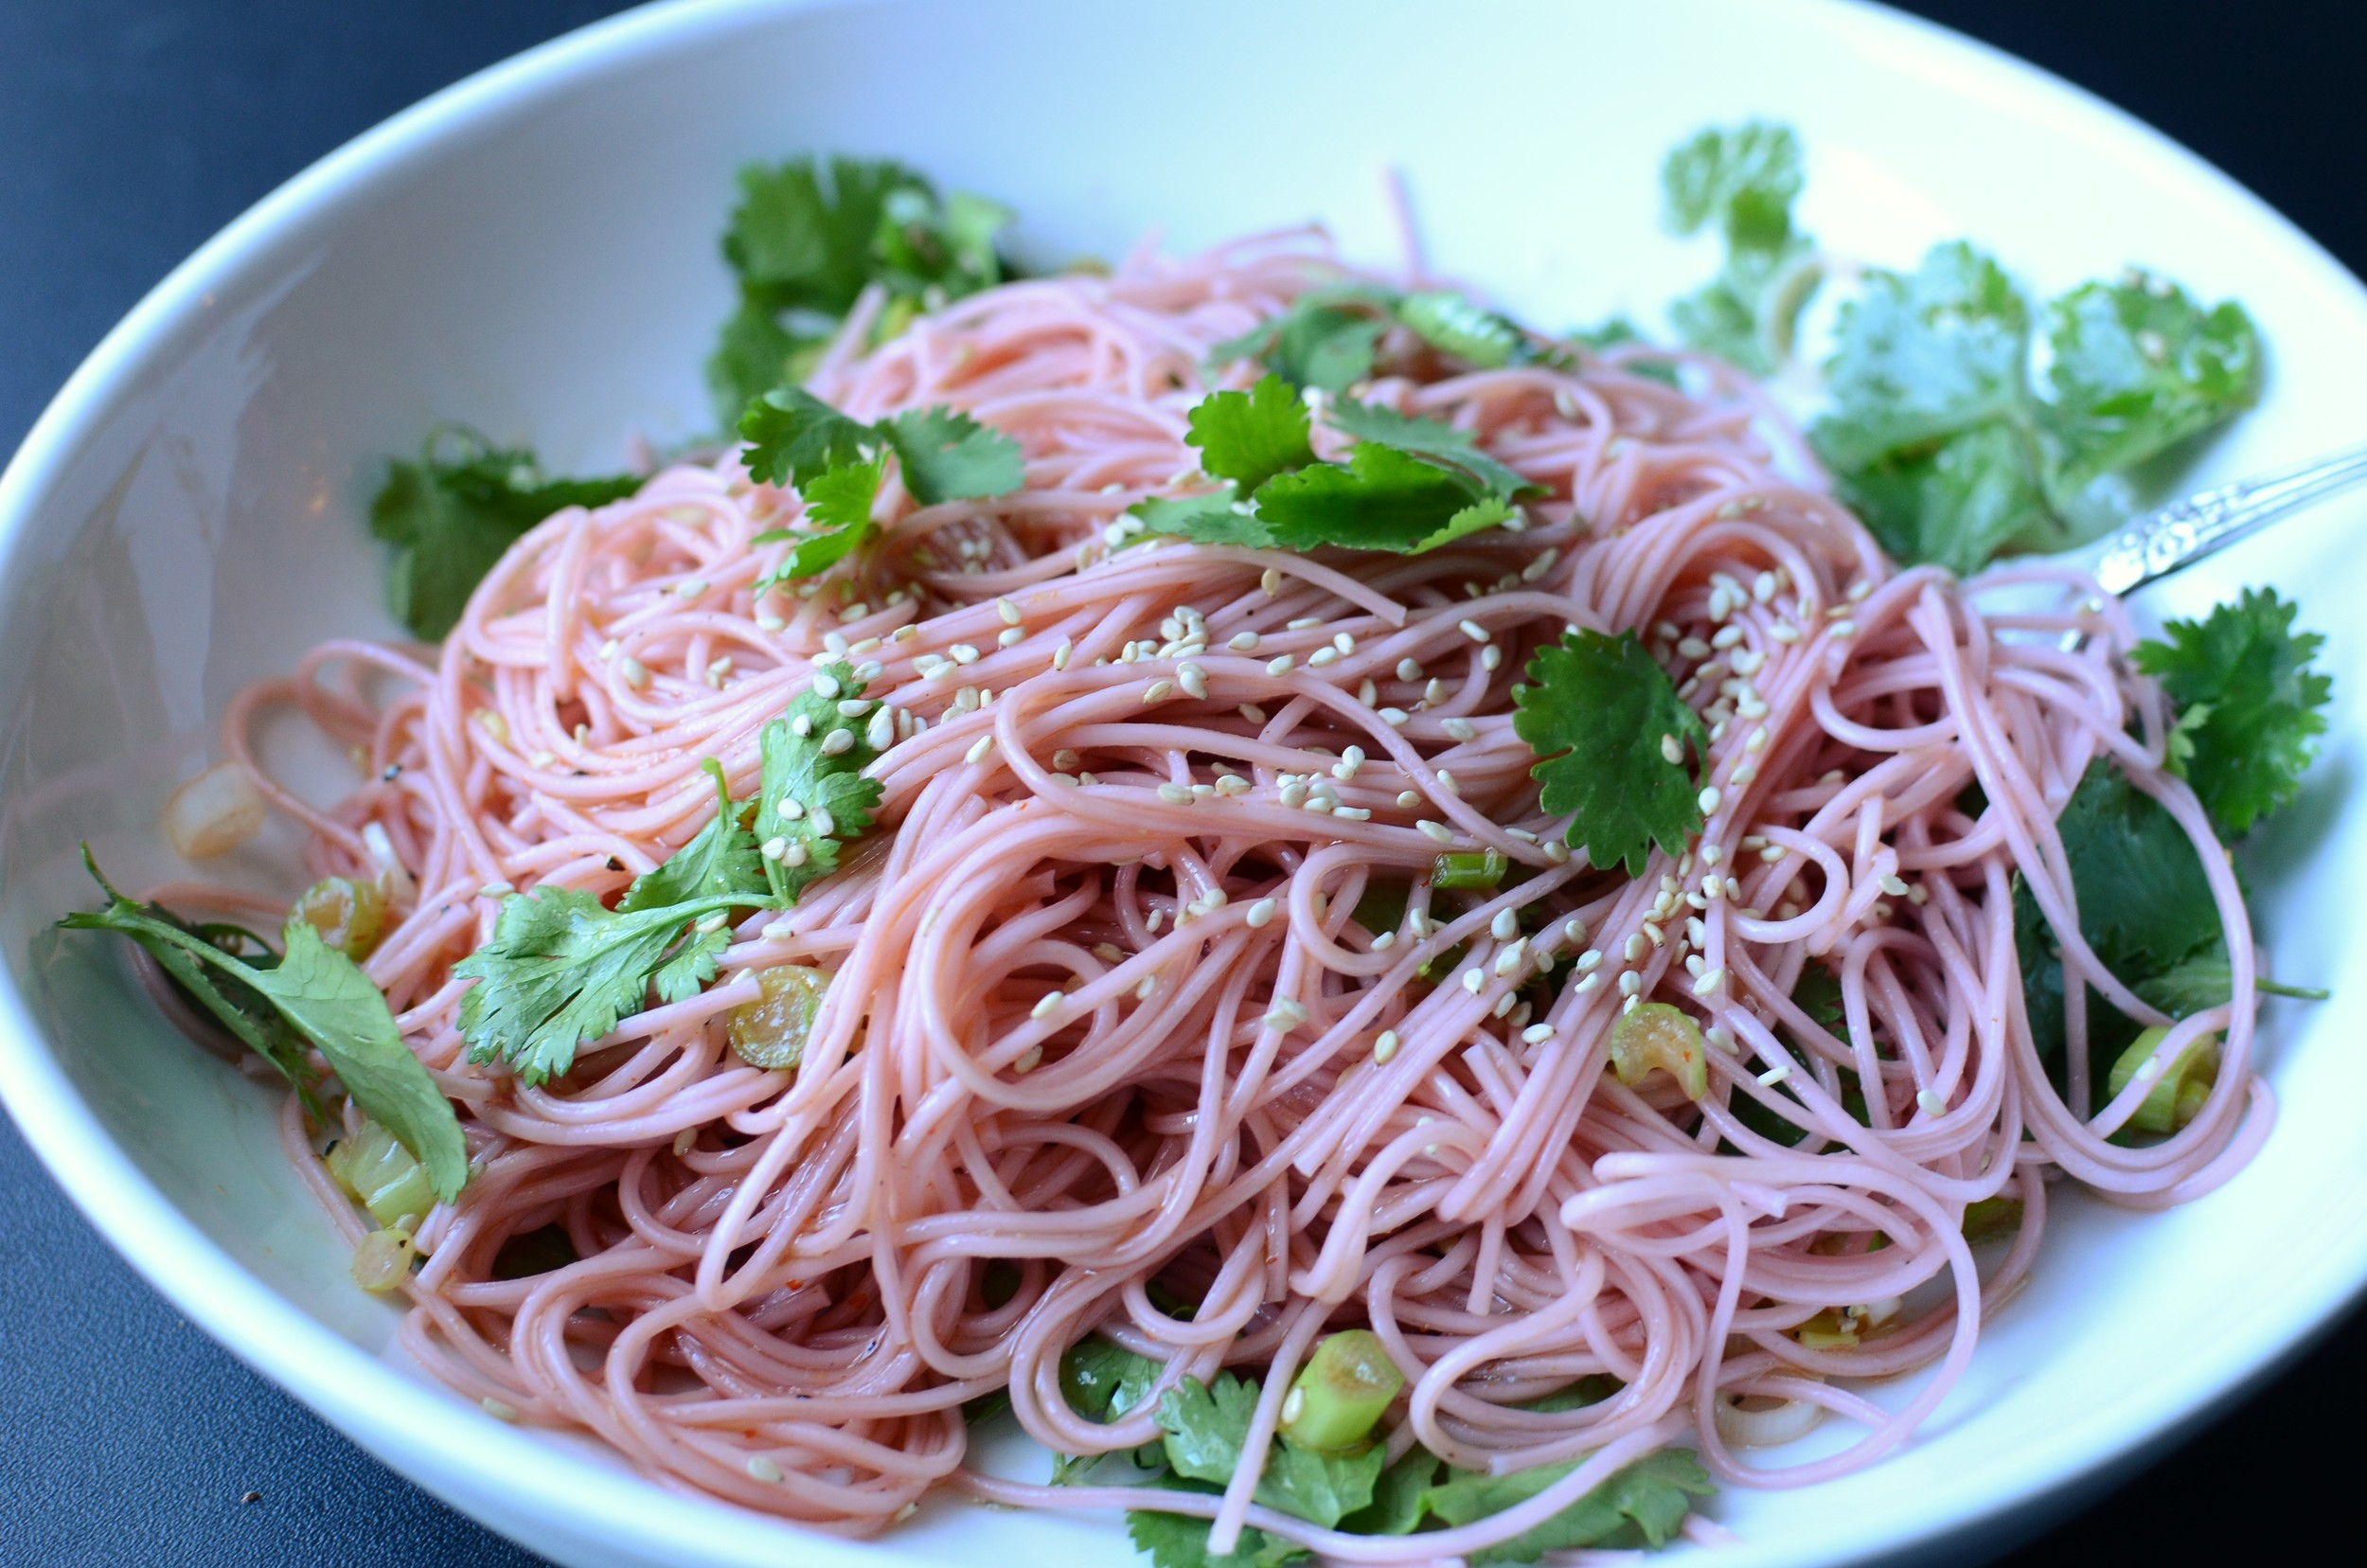 spicy cold ume somen noodles recipe (japanese plum noodles)